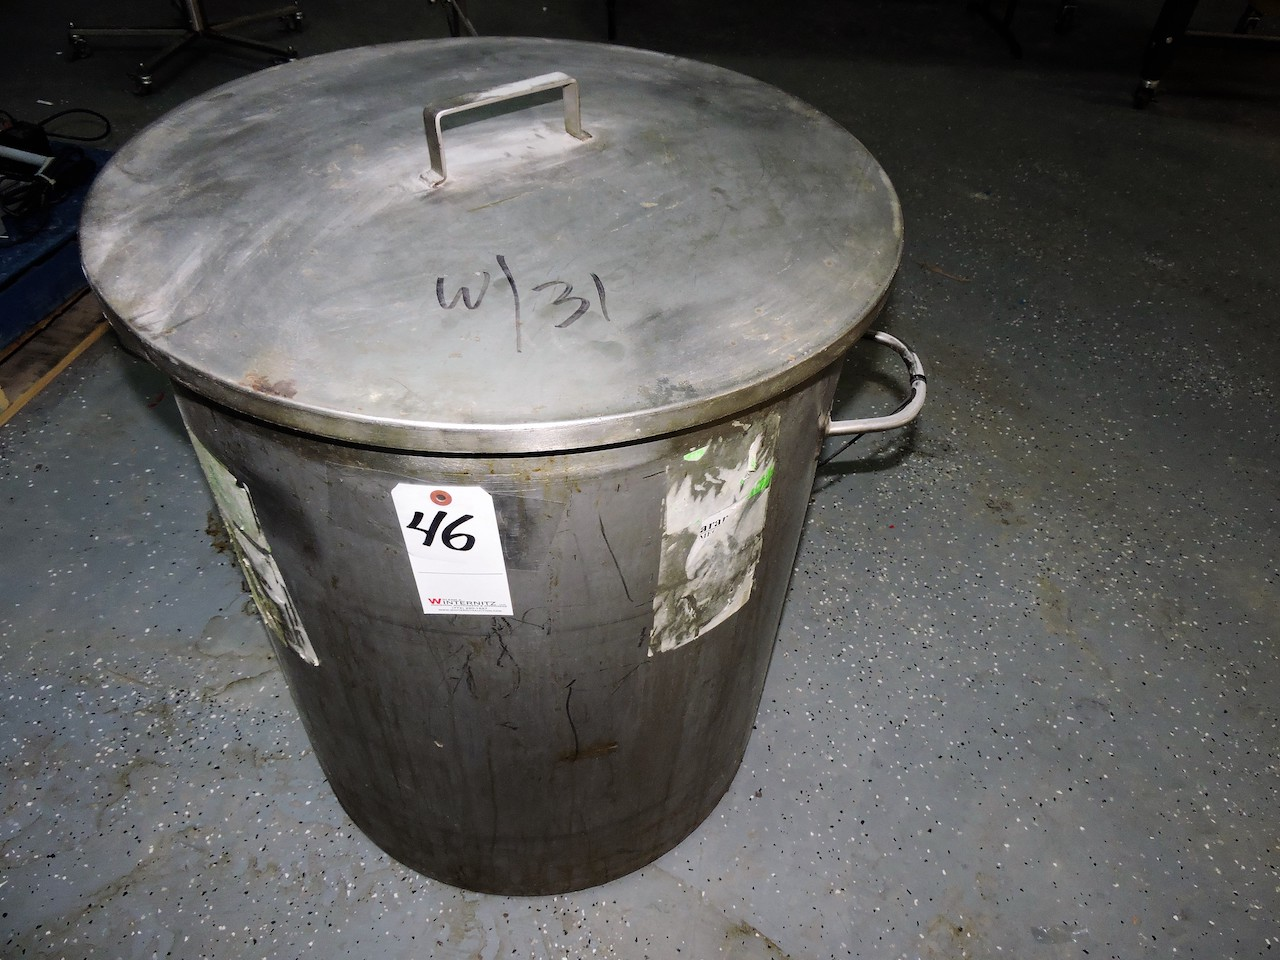 Lot 46 - STAINLESS STEEL TANK 40 GALLON WITH LID